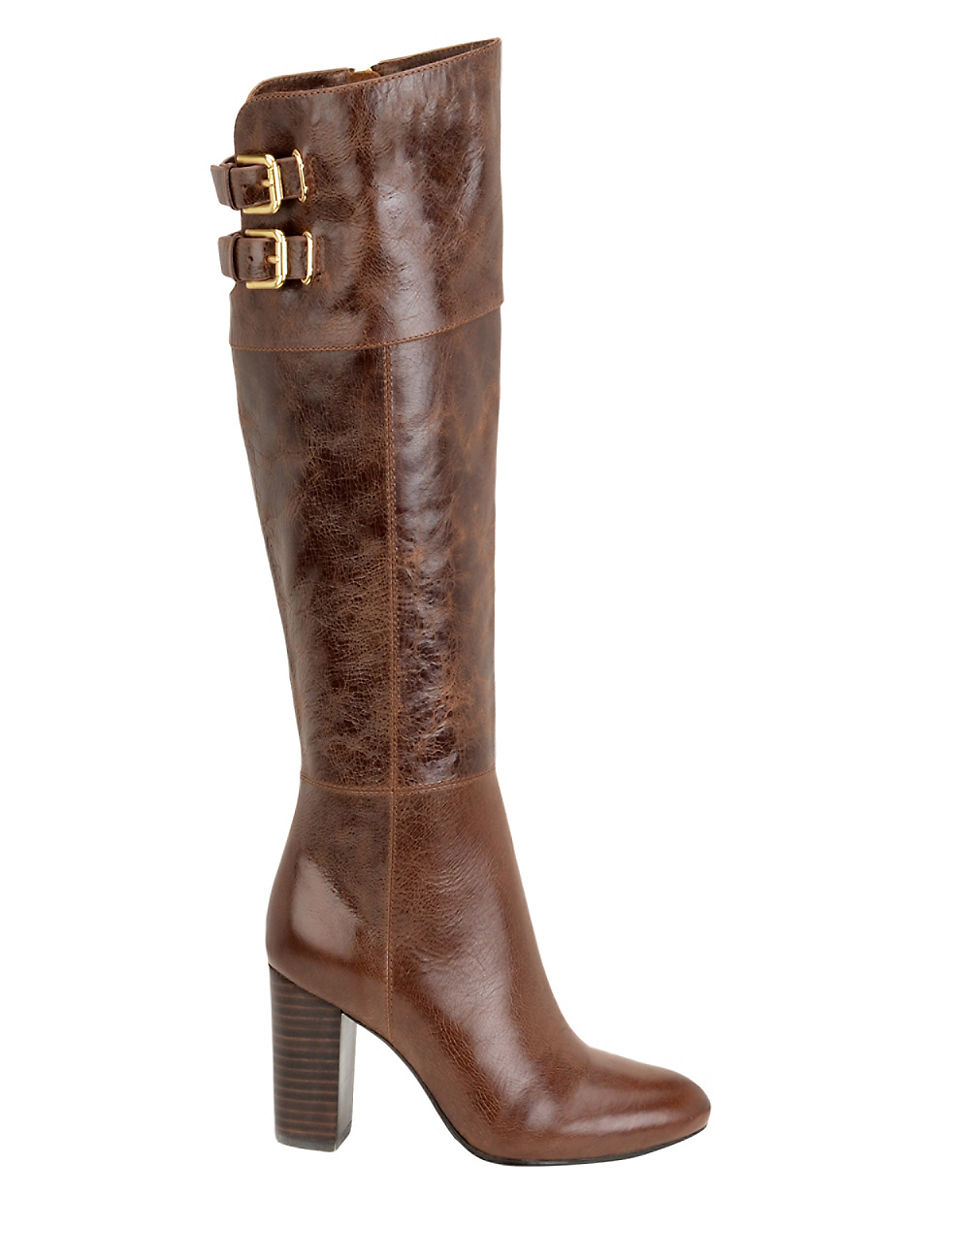 Find great deals on eBay for brown leather knee high boots. Shop with confidence.